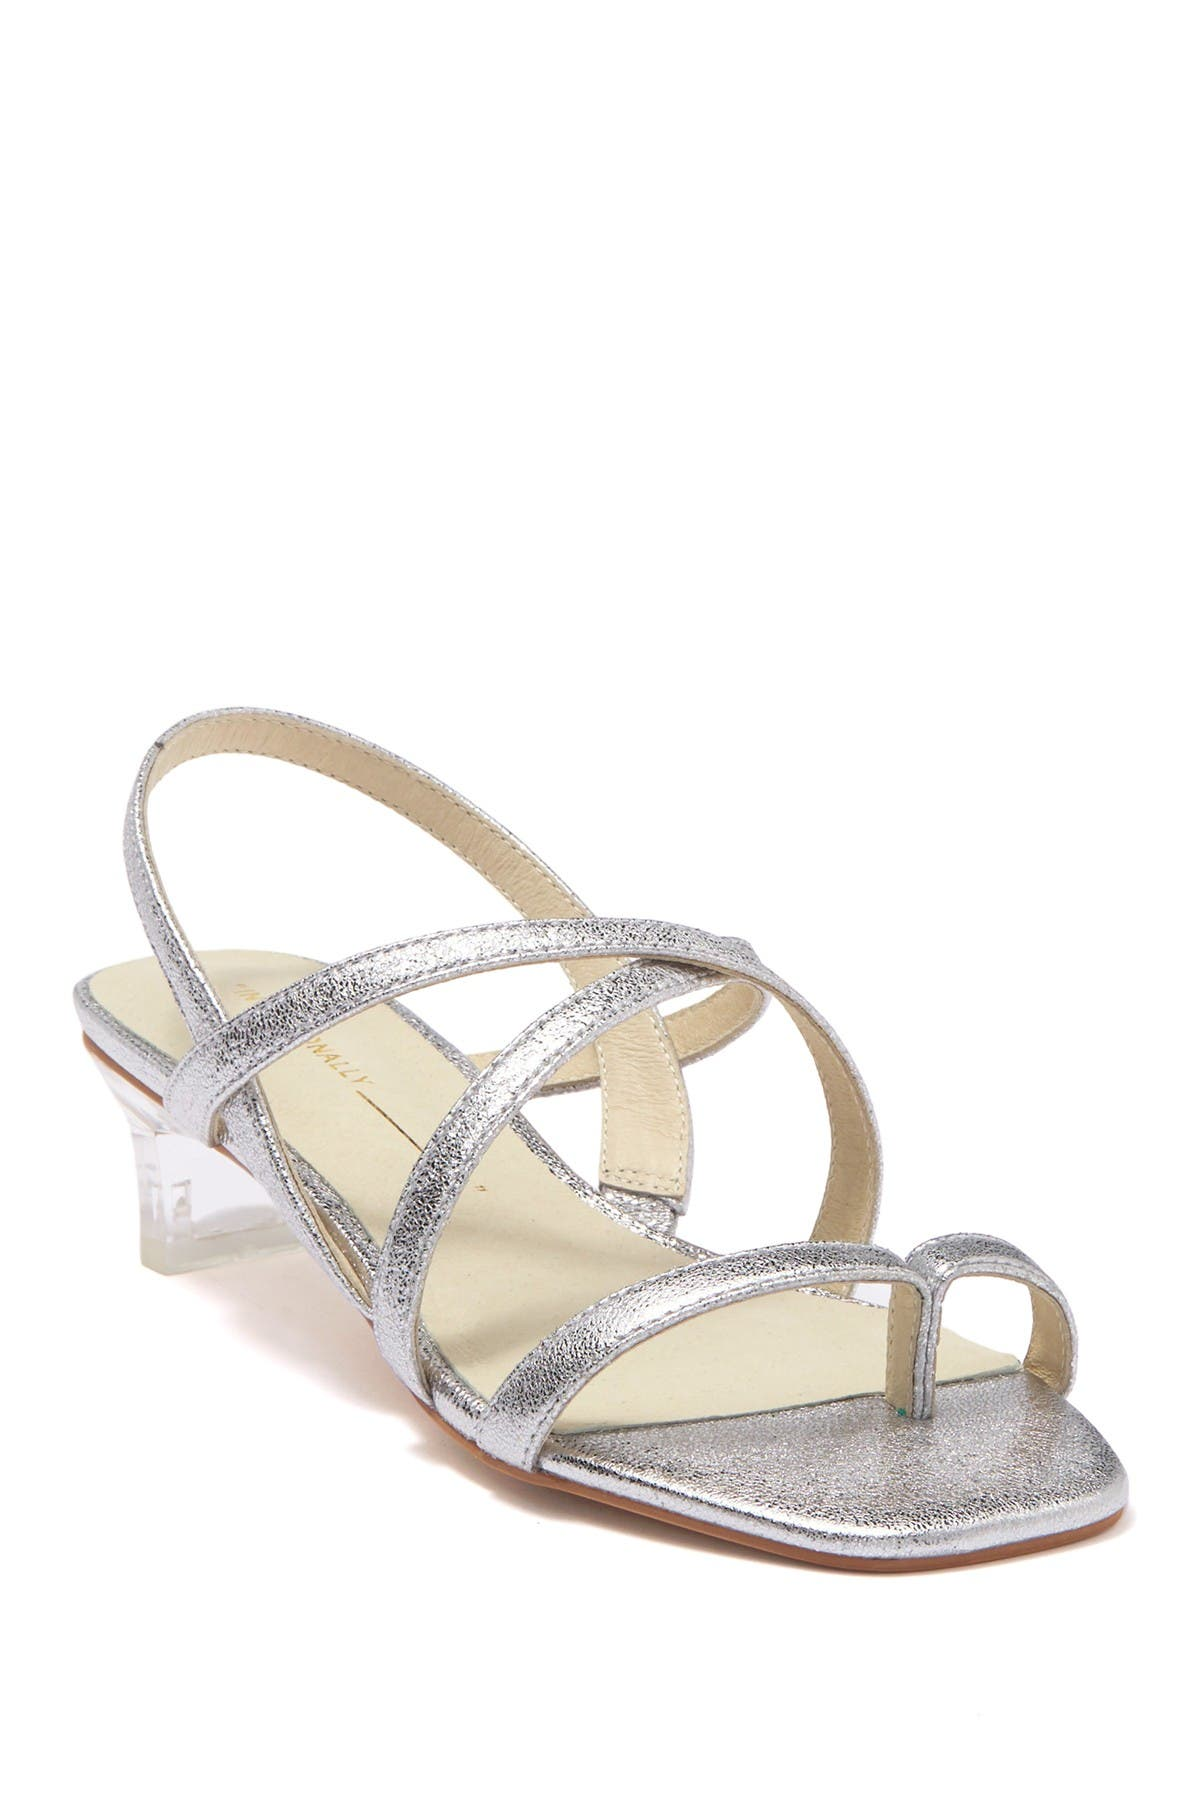 Image of Intentionally Blank Gal Sandal